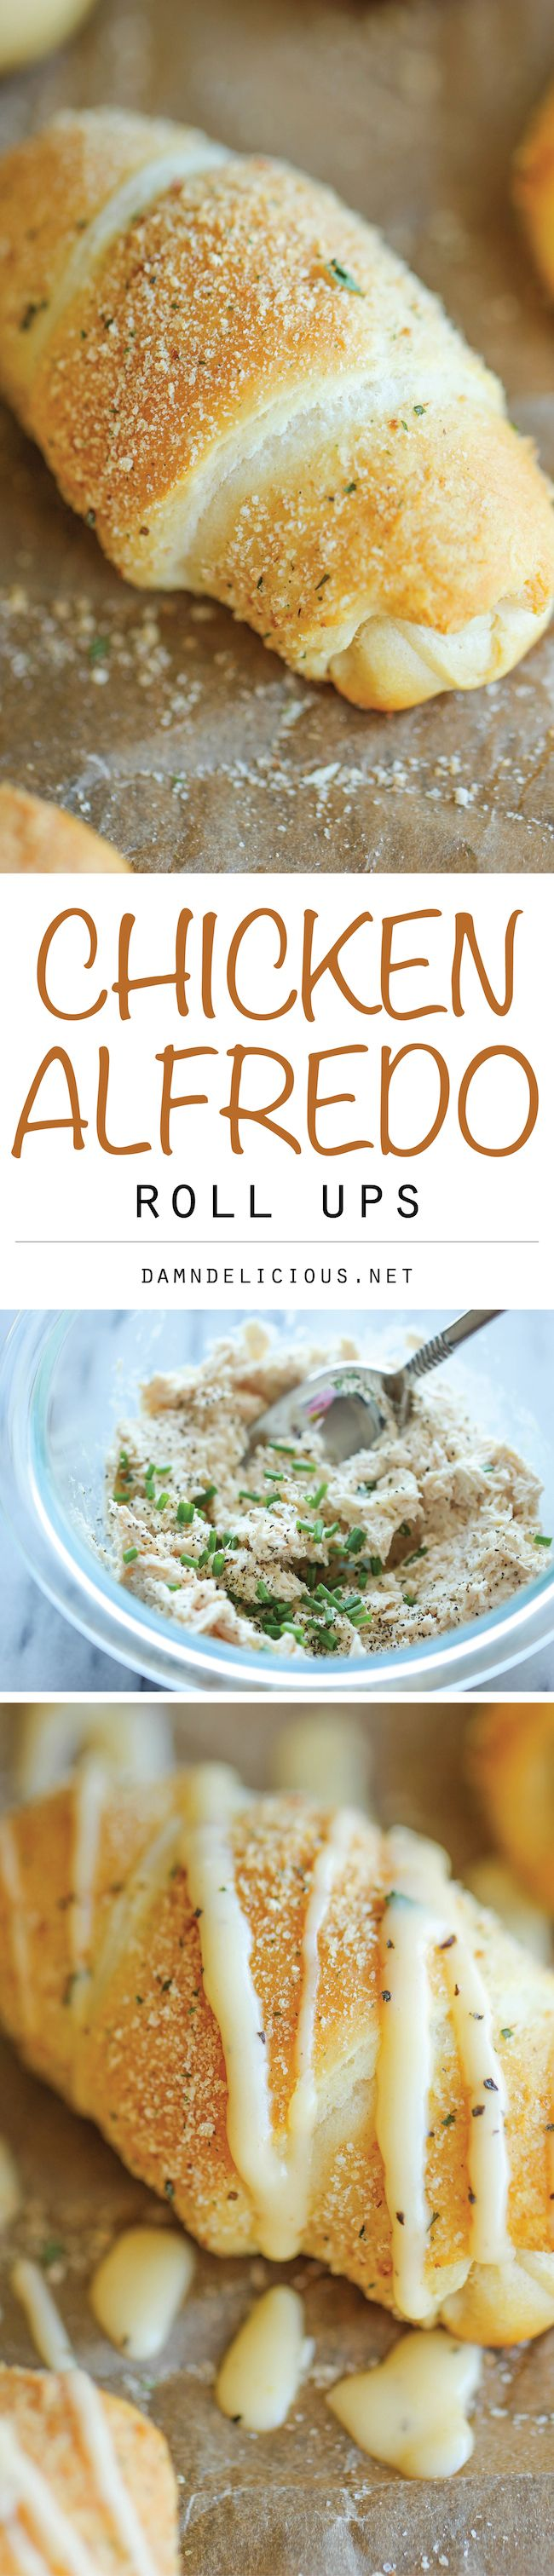 leather ladies jacket Chicken Alfredo Roll Ups   The easiest  no fuss chicken alfredo you will ever make  conveniently stuffed in the butteriest roll ever